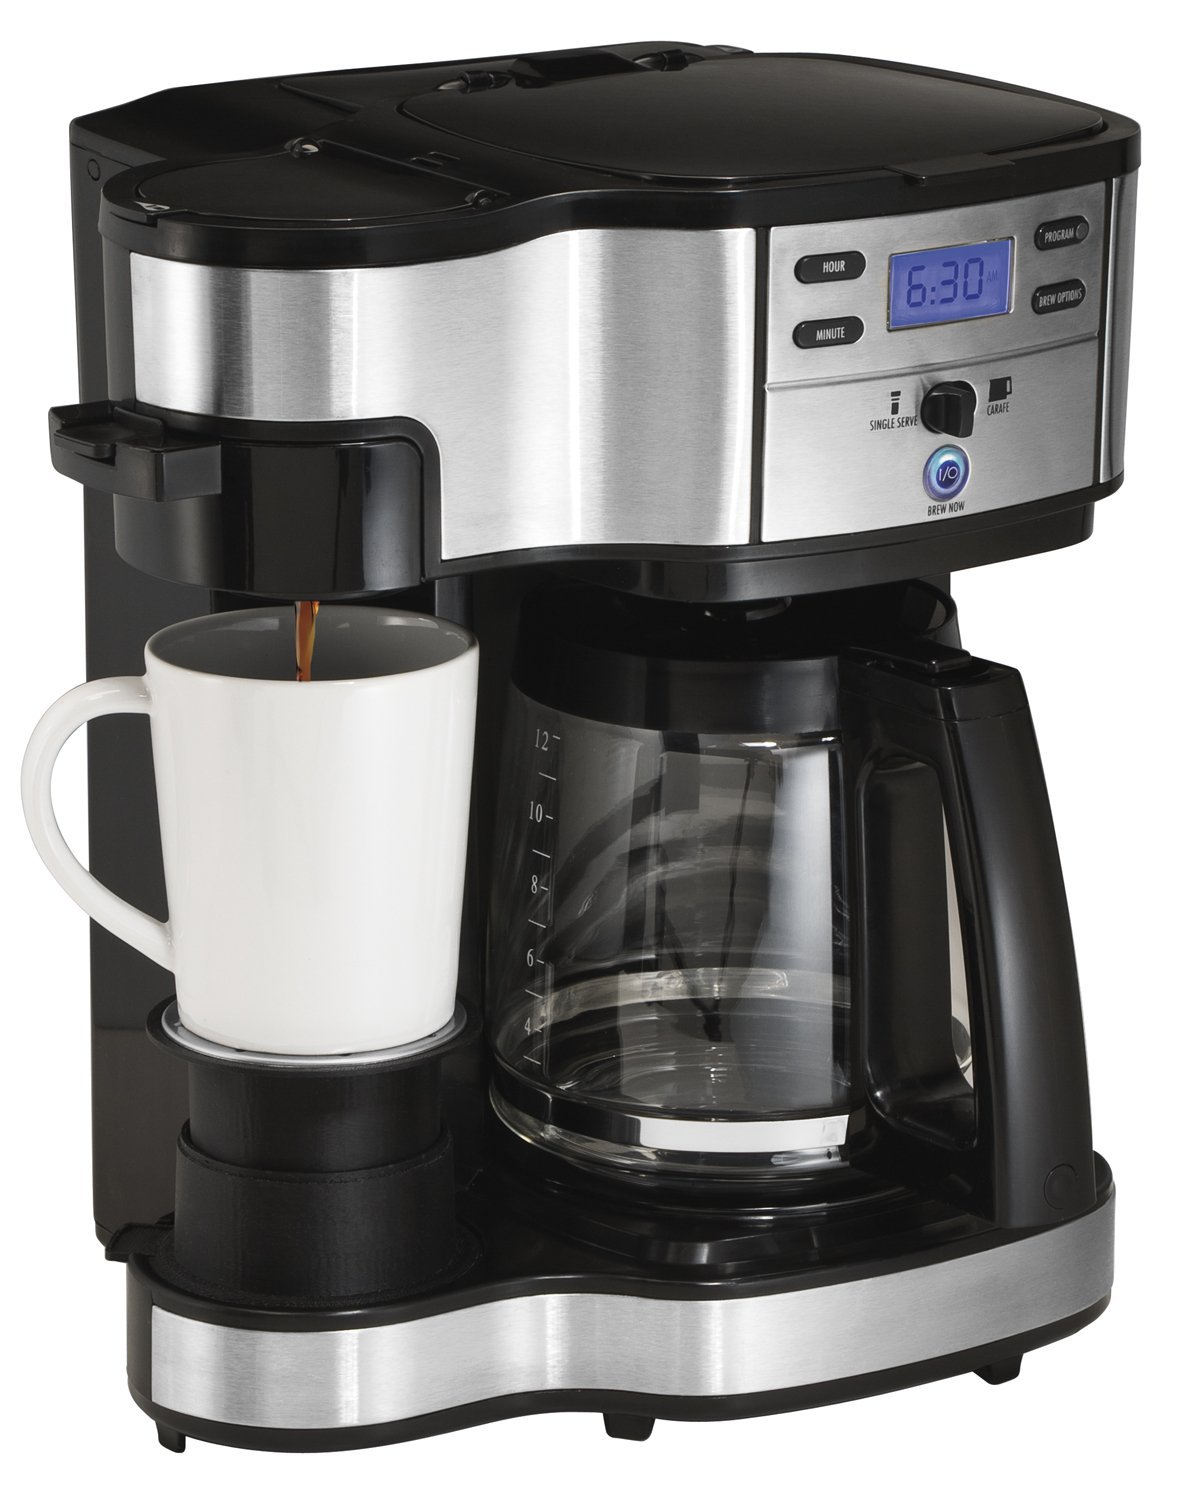 Hamilton Beach Full Pot Coffee Maker and Single Serve Coffee Brewer (49980A, 2-Way) Review